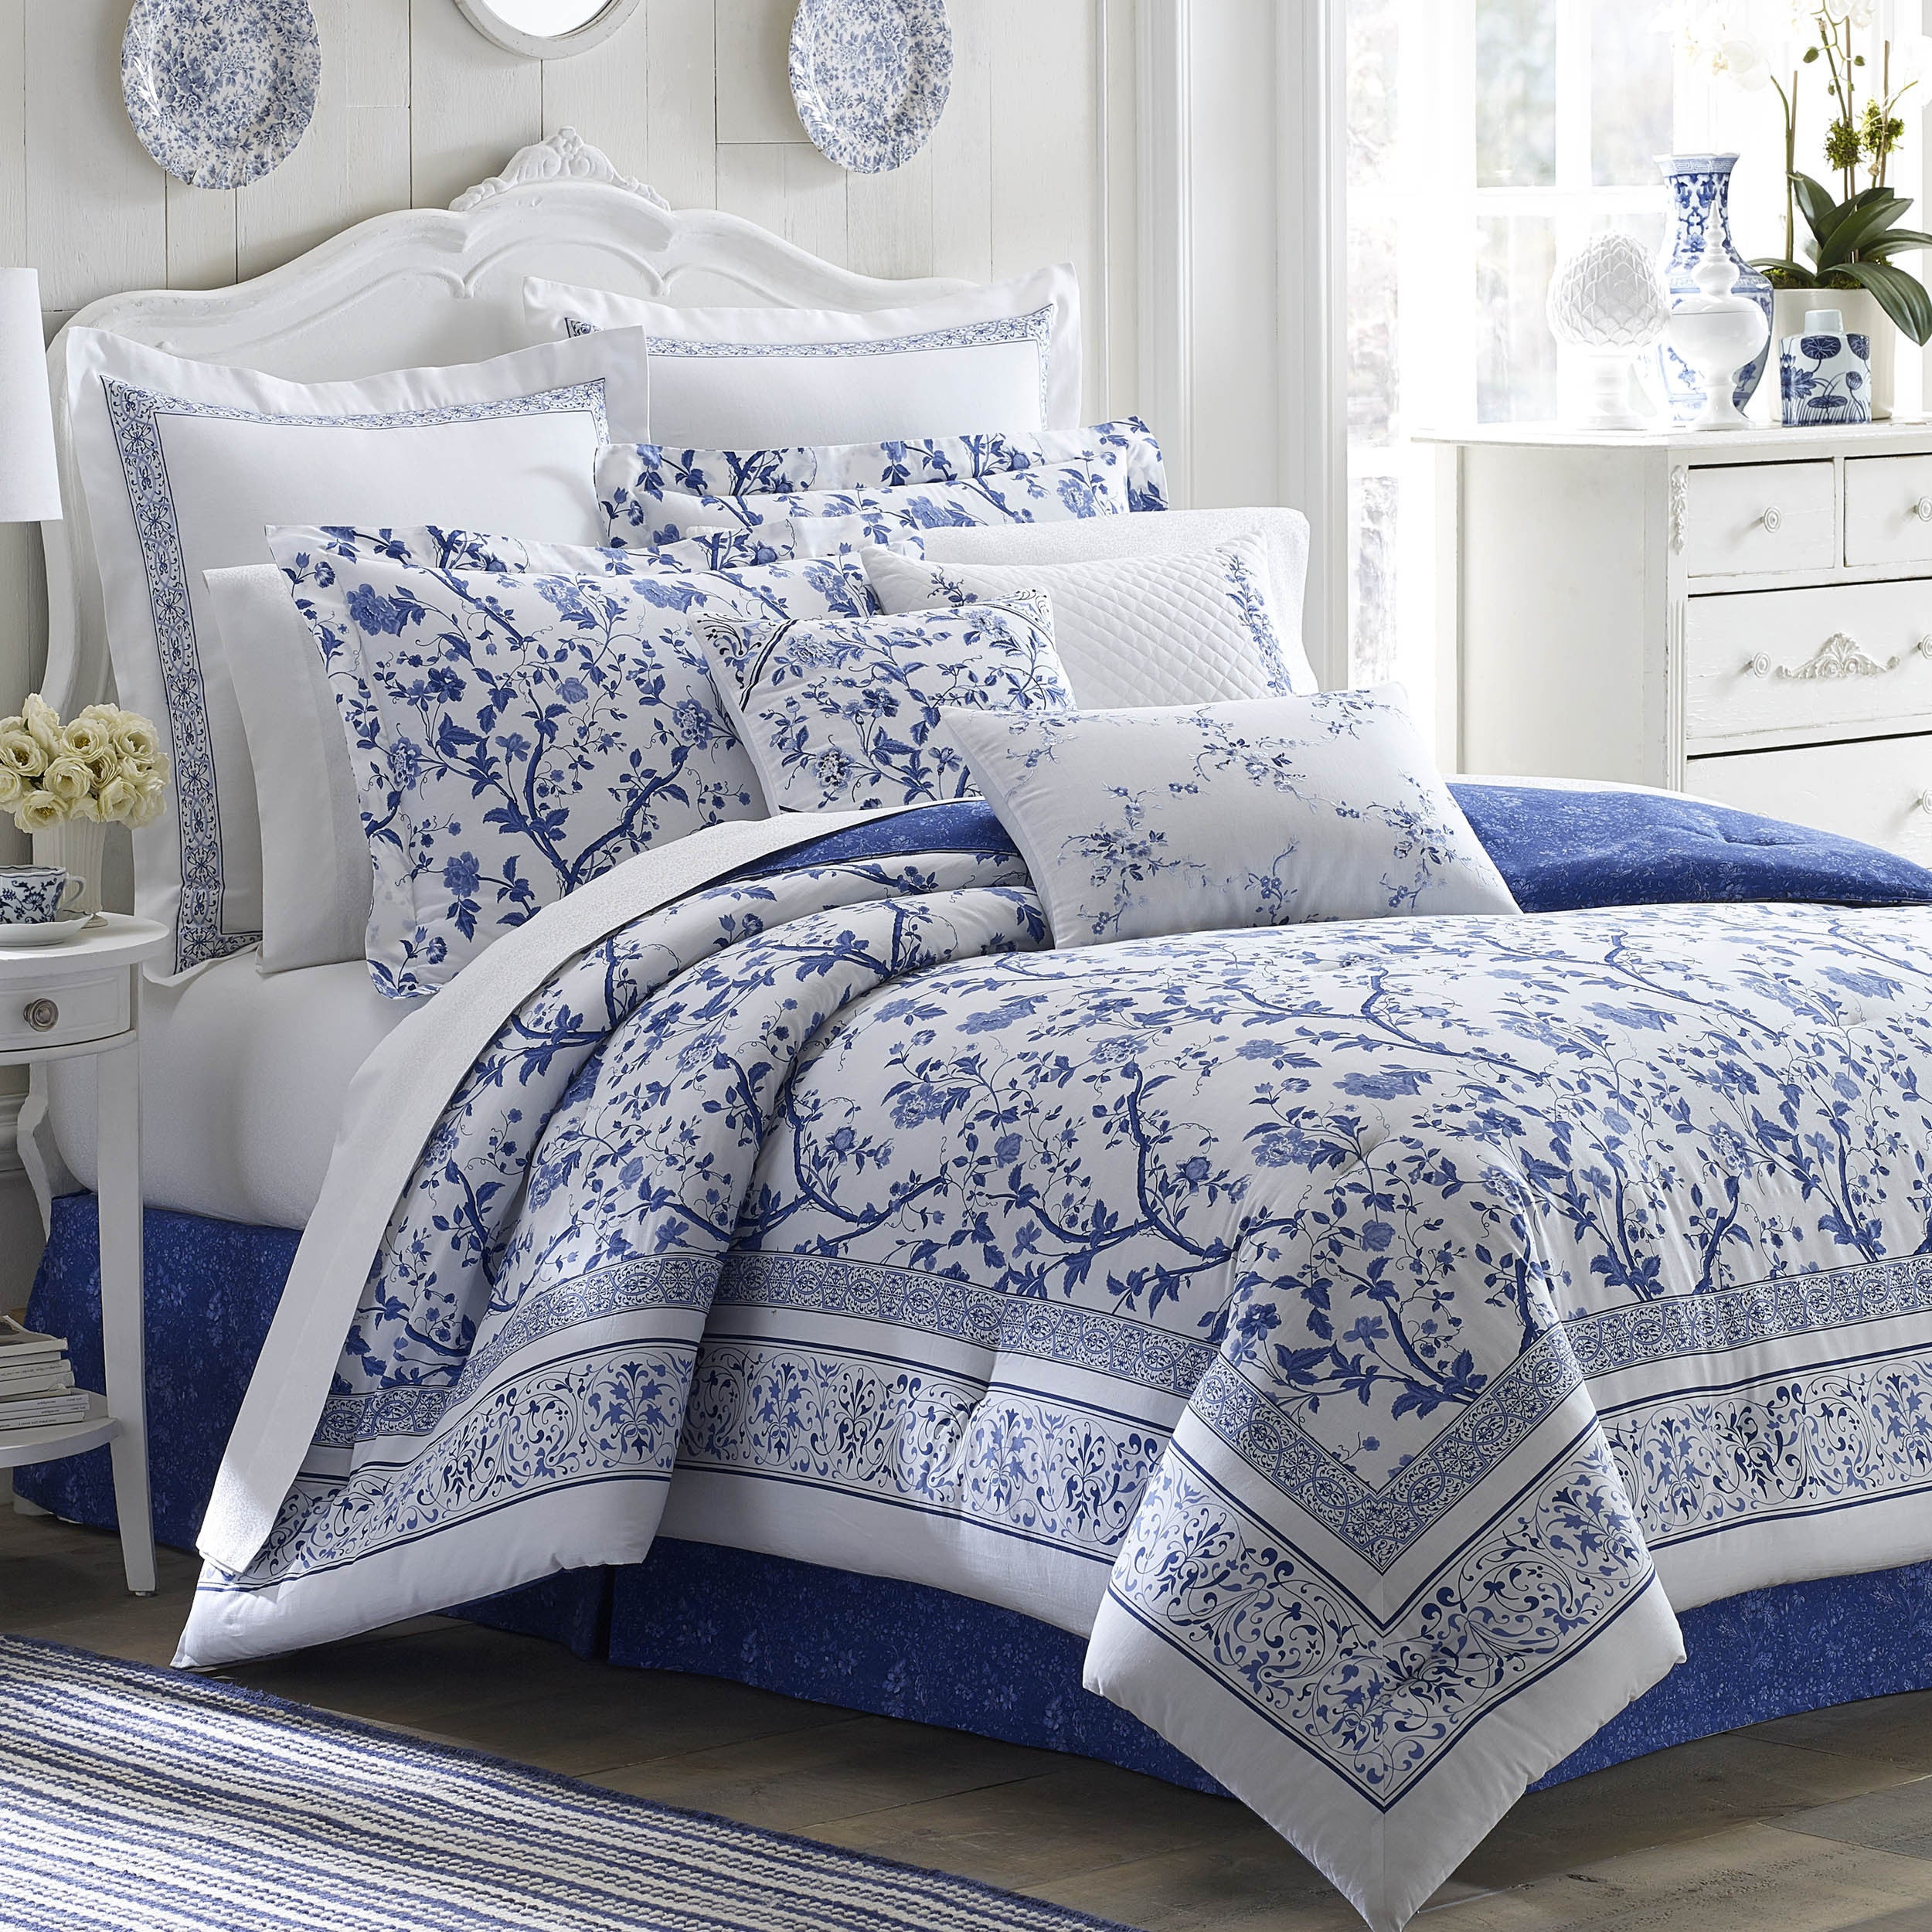 Laura Ashley Charlotte Blue and White Floral Cotton 4-Pie...